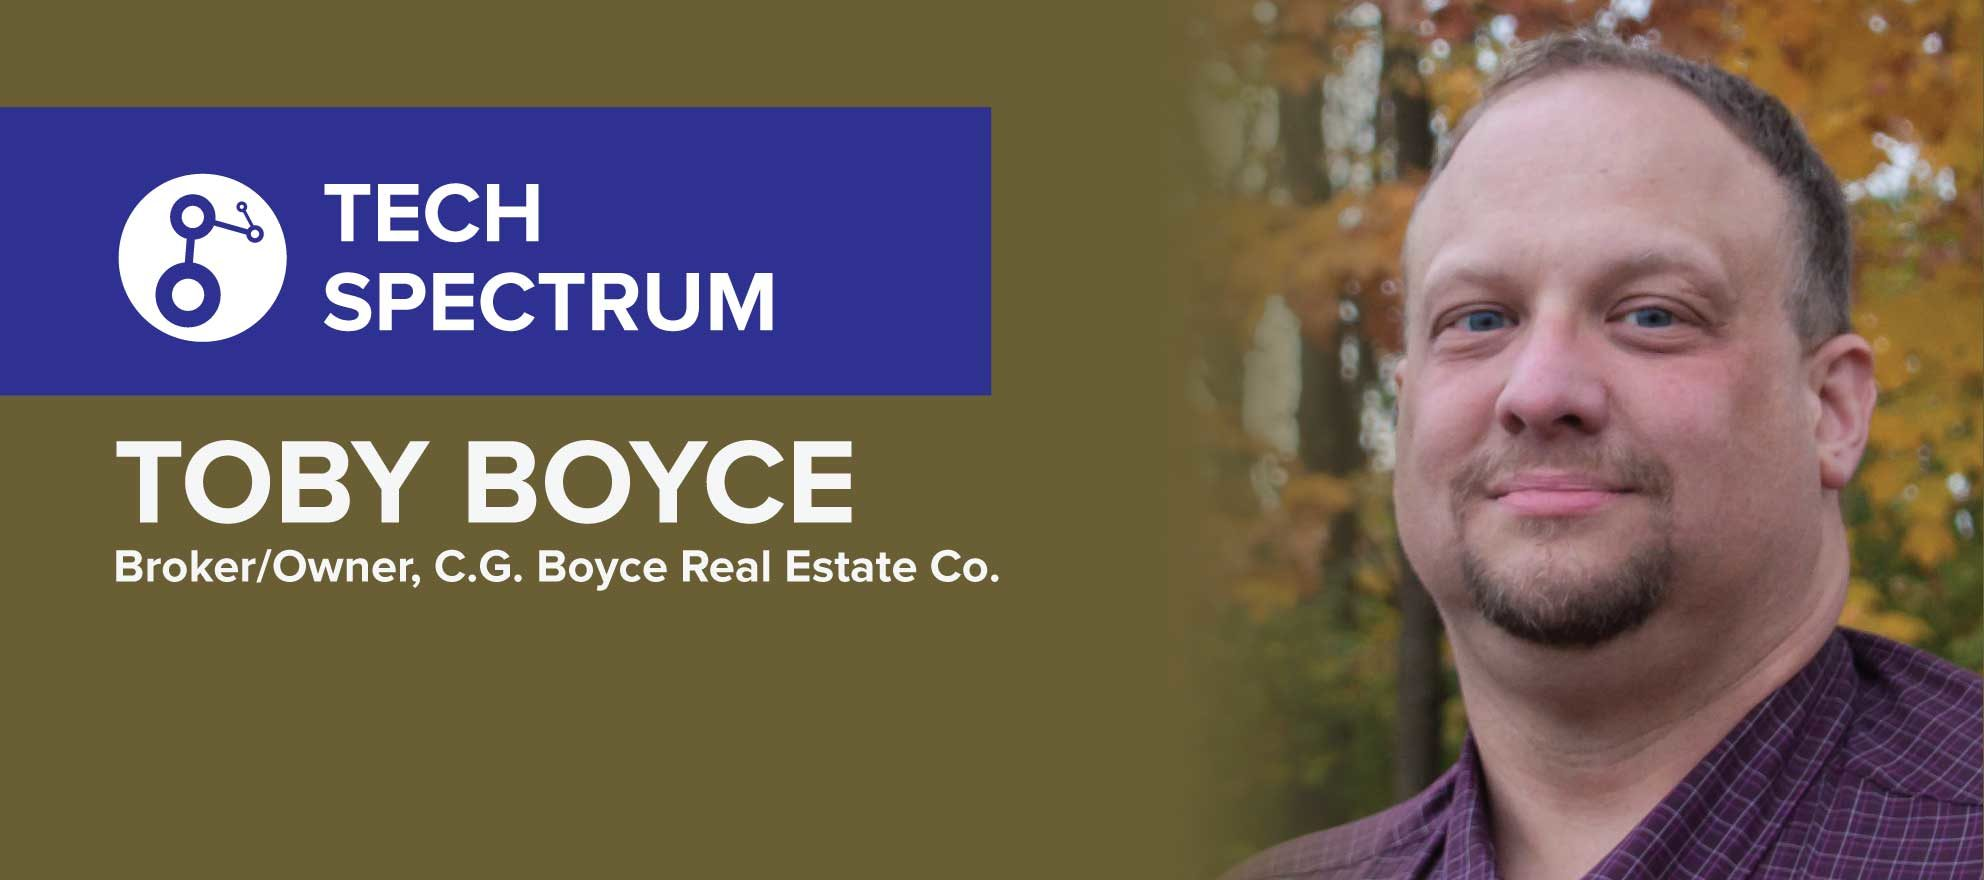 Toby Boyce on Outlook, Contactually and the other digital tools that drive his brokerage